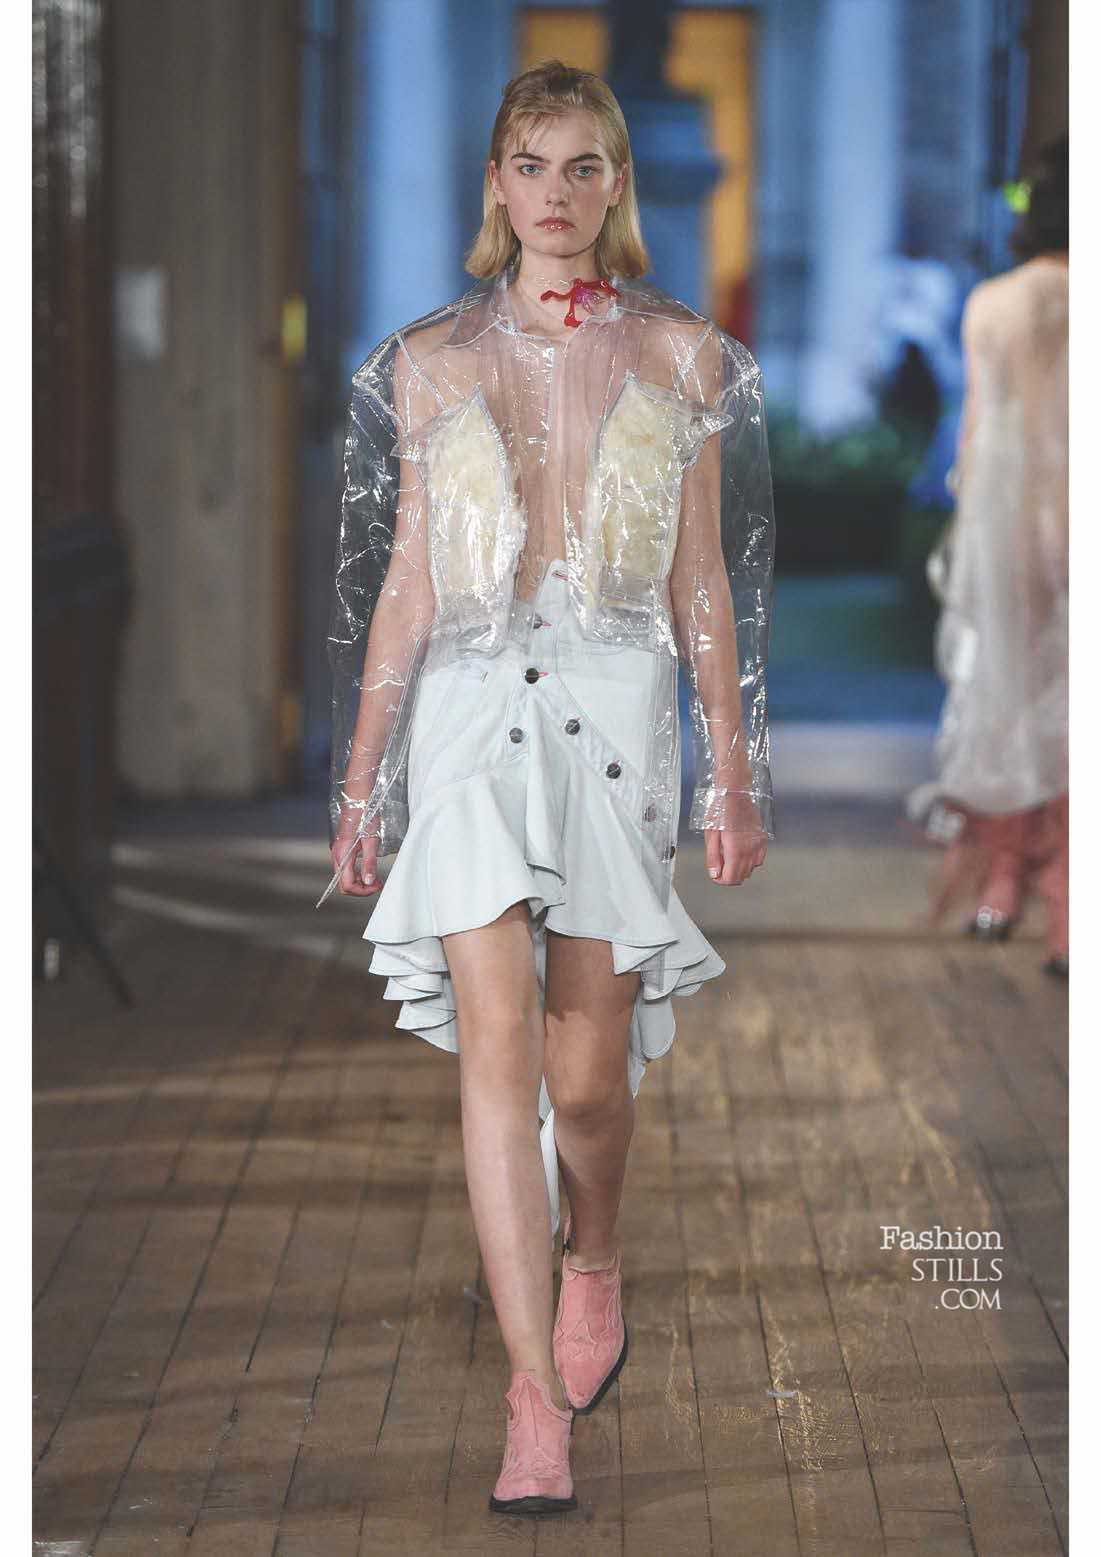 Neith Nyer_1513681565_5b_look-book-_-press-release-ss18-neith-nyer-004.jpg